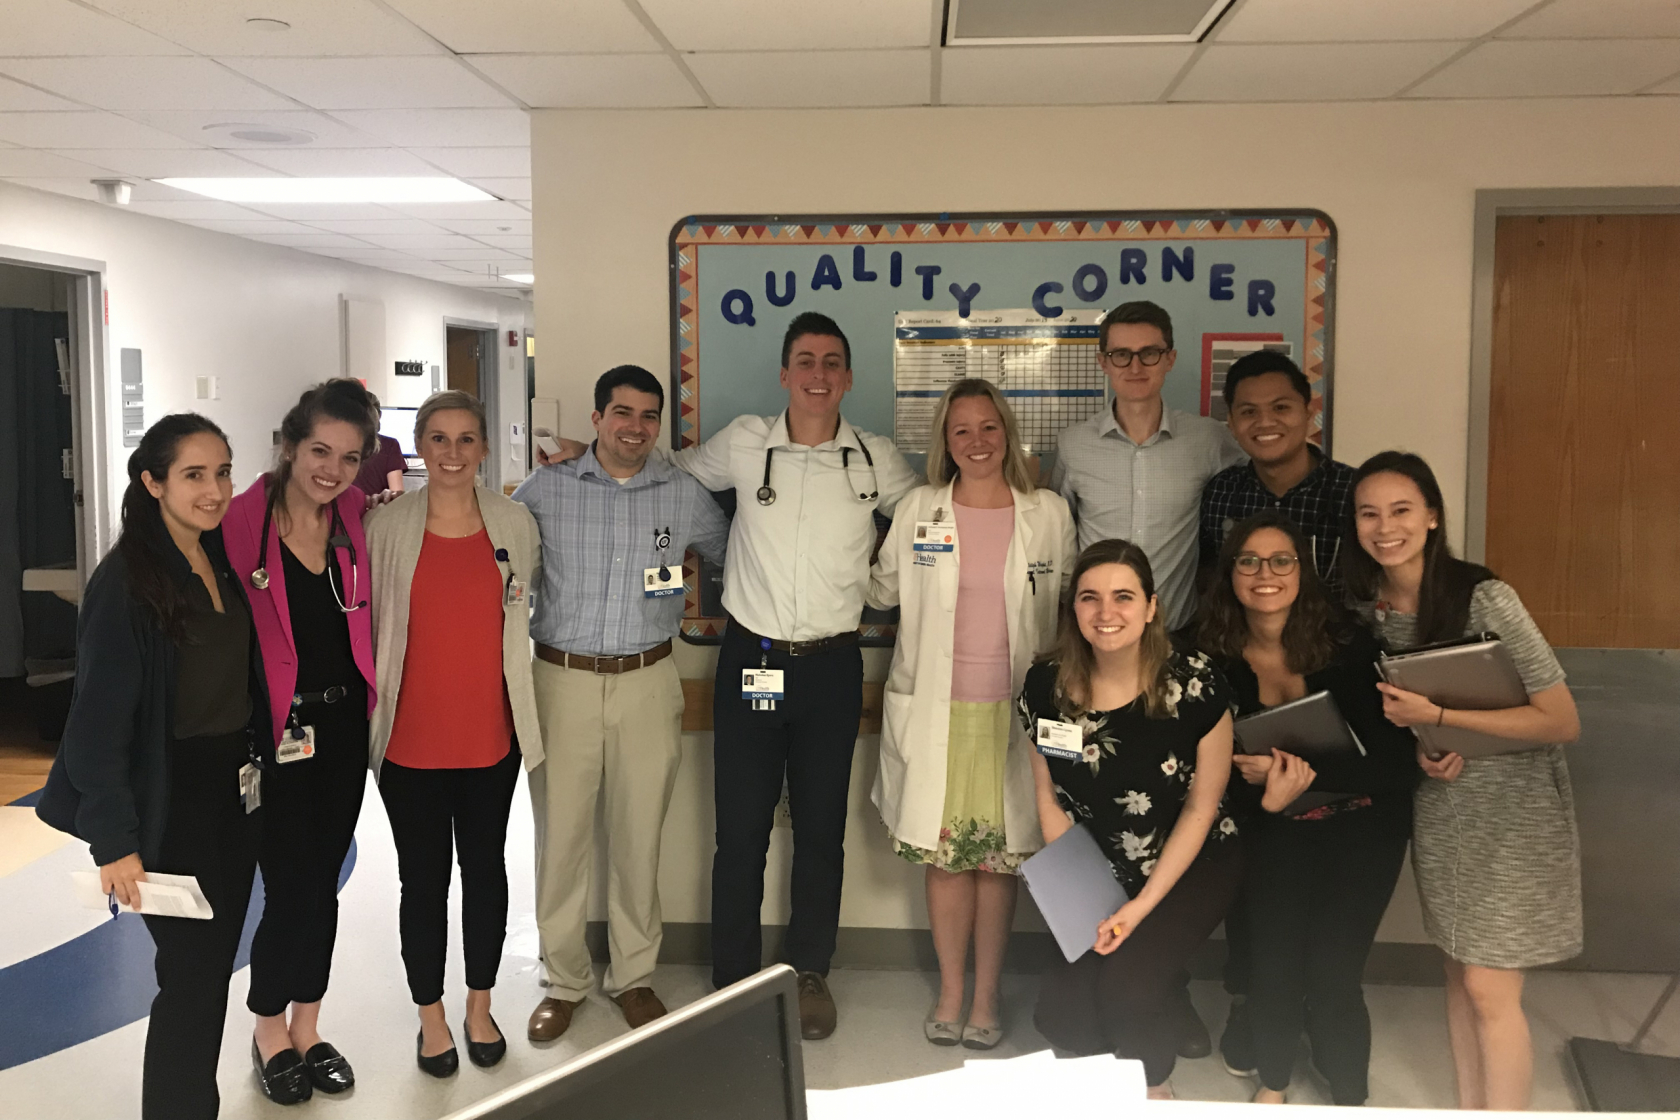 Ashleigh Wright, M.D. '07, center, in white coat, poses for a photo with third- and fourth-year medical students and residents during fall 2019.